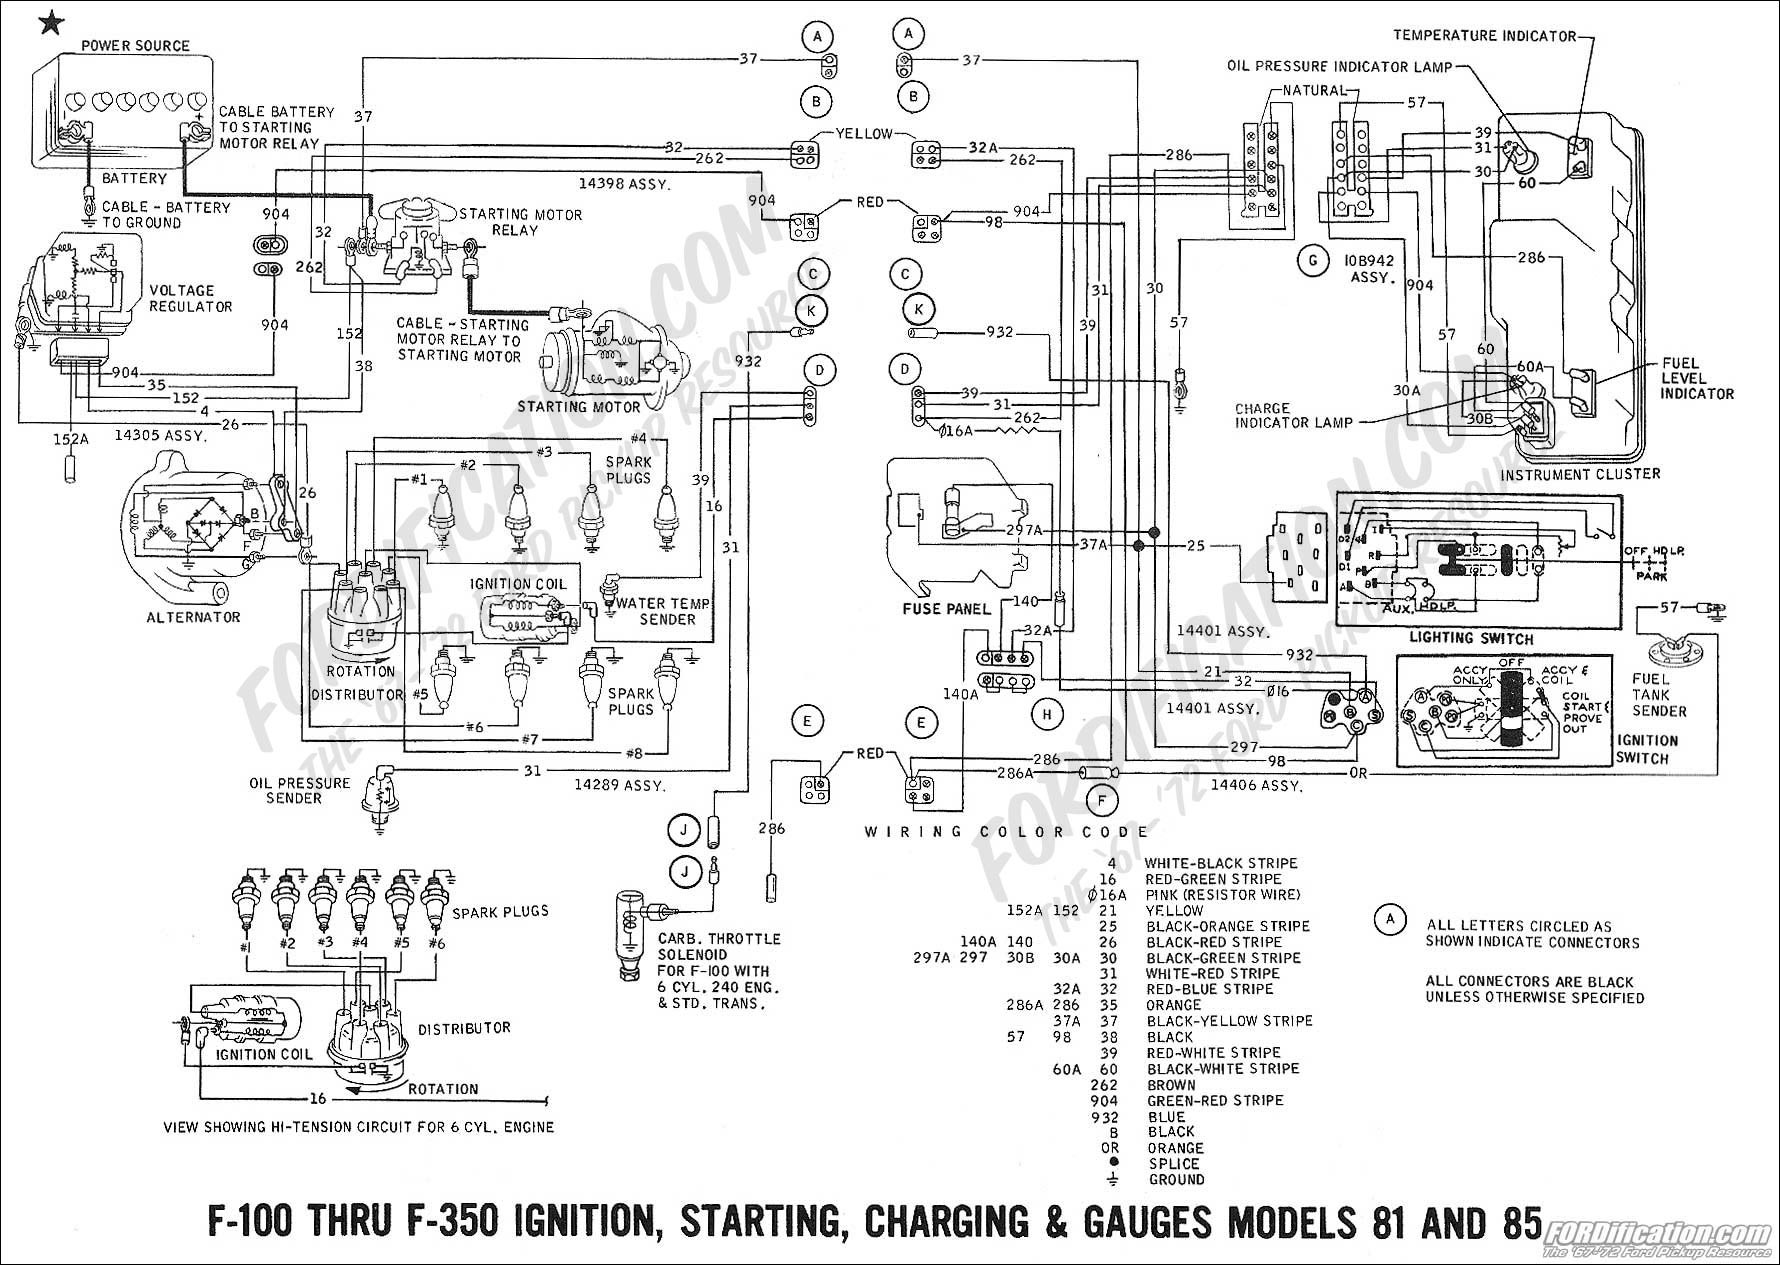 Ford Alternator Wiring Diagram New Image Regulator Power 7000 Voltage Brilliant Charging Rh Thoritsolutions 1969